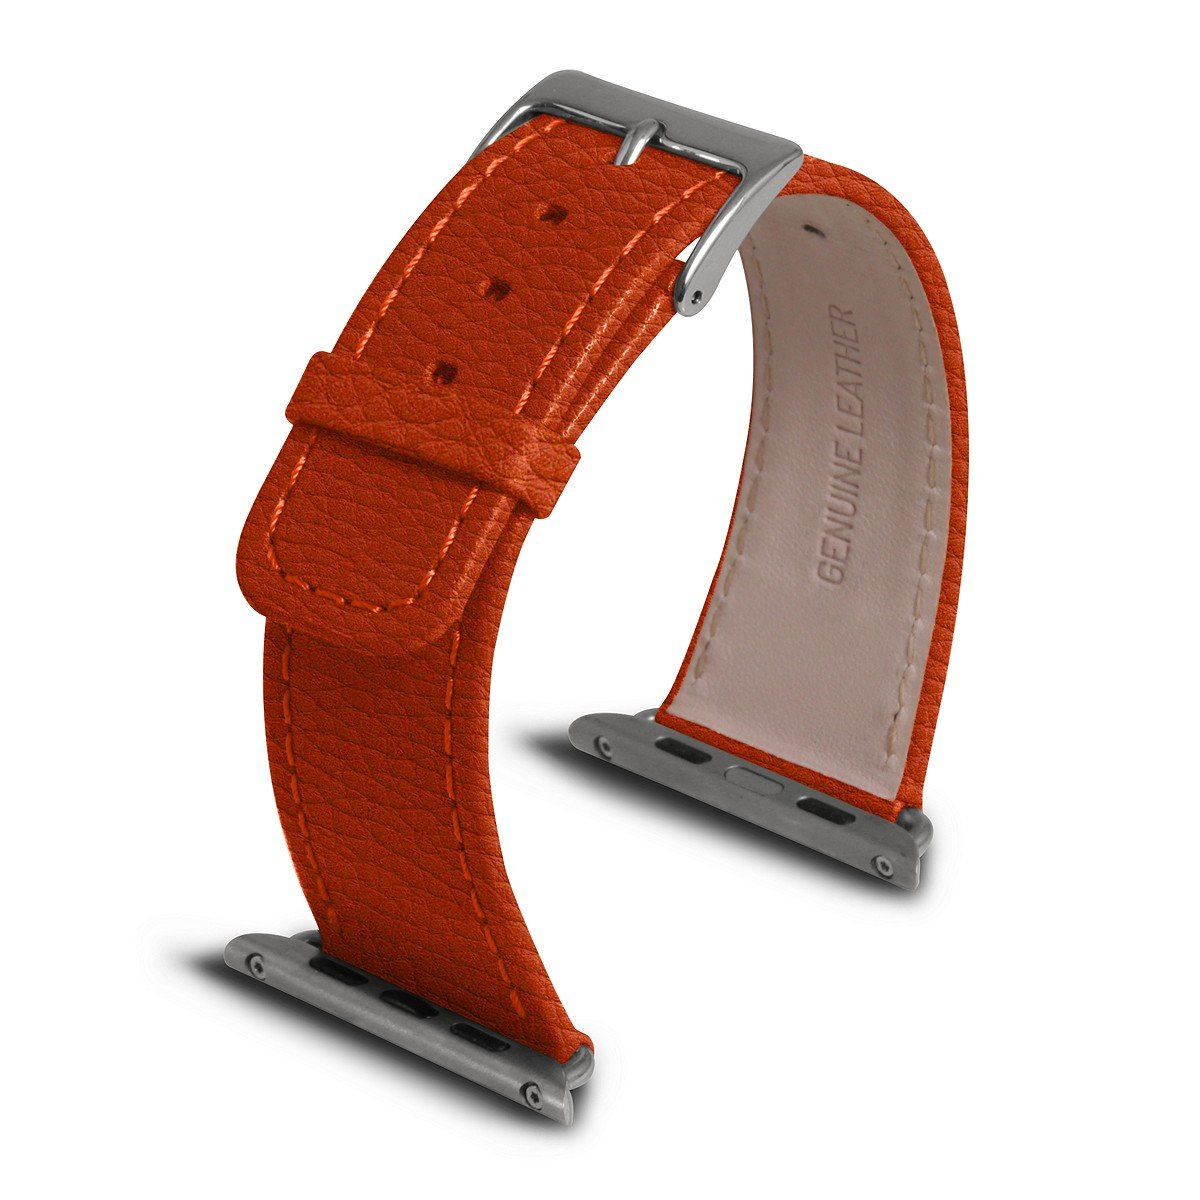 Lucrin - Apple Watch Band 42 mm - Classic - Orange - Granulated Leather by Lucrin (Image #1)